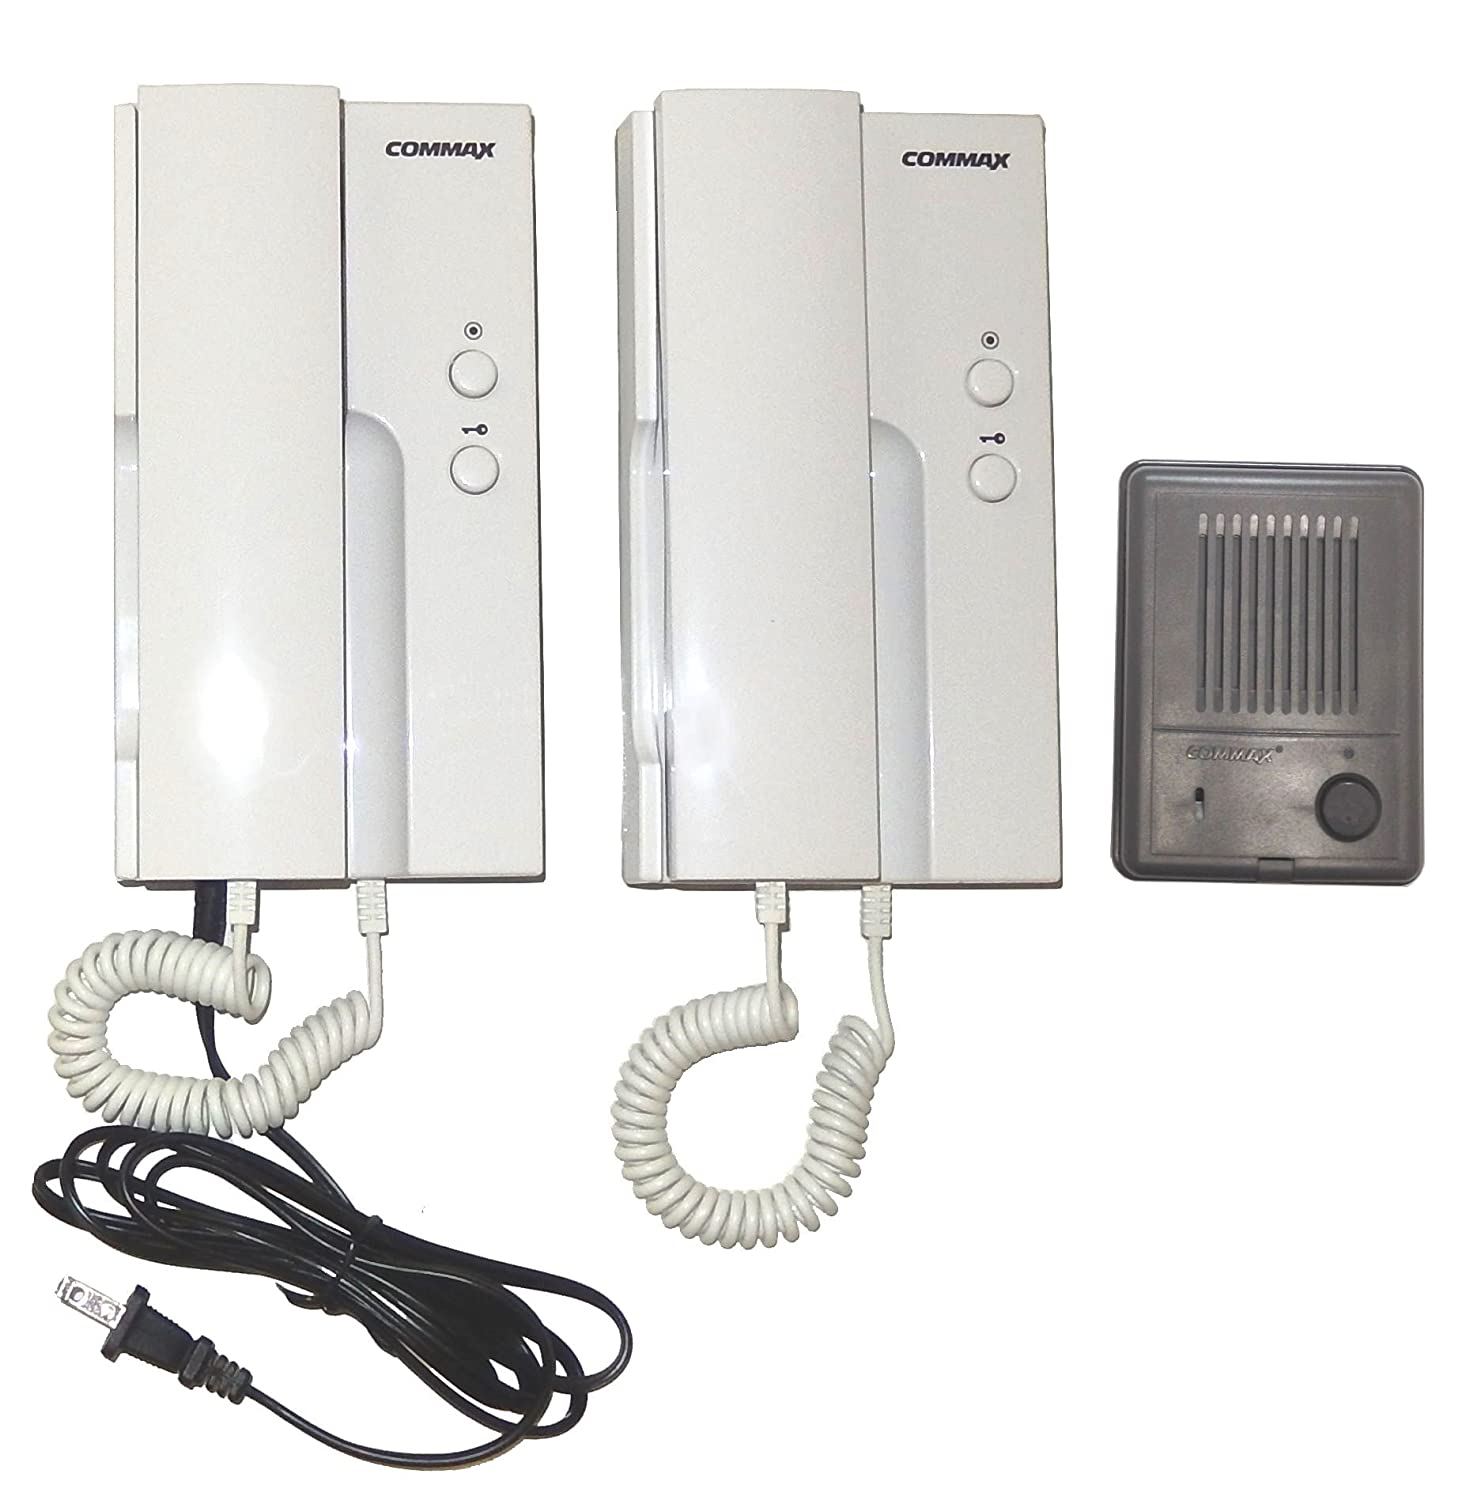 7166gKh3JFL._SL1500_ amazon com commax audio intercom system 2 to1 doorphones and commax audio intercom wiring diagram at aneh.co